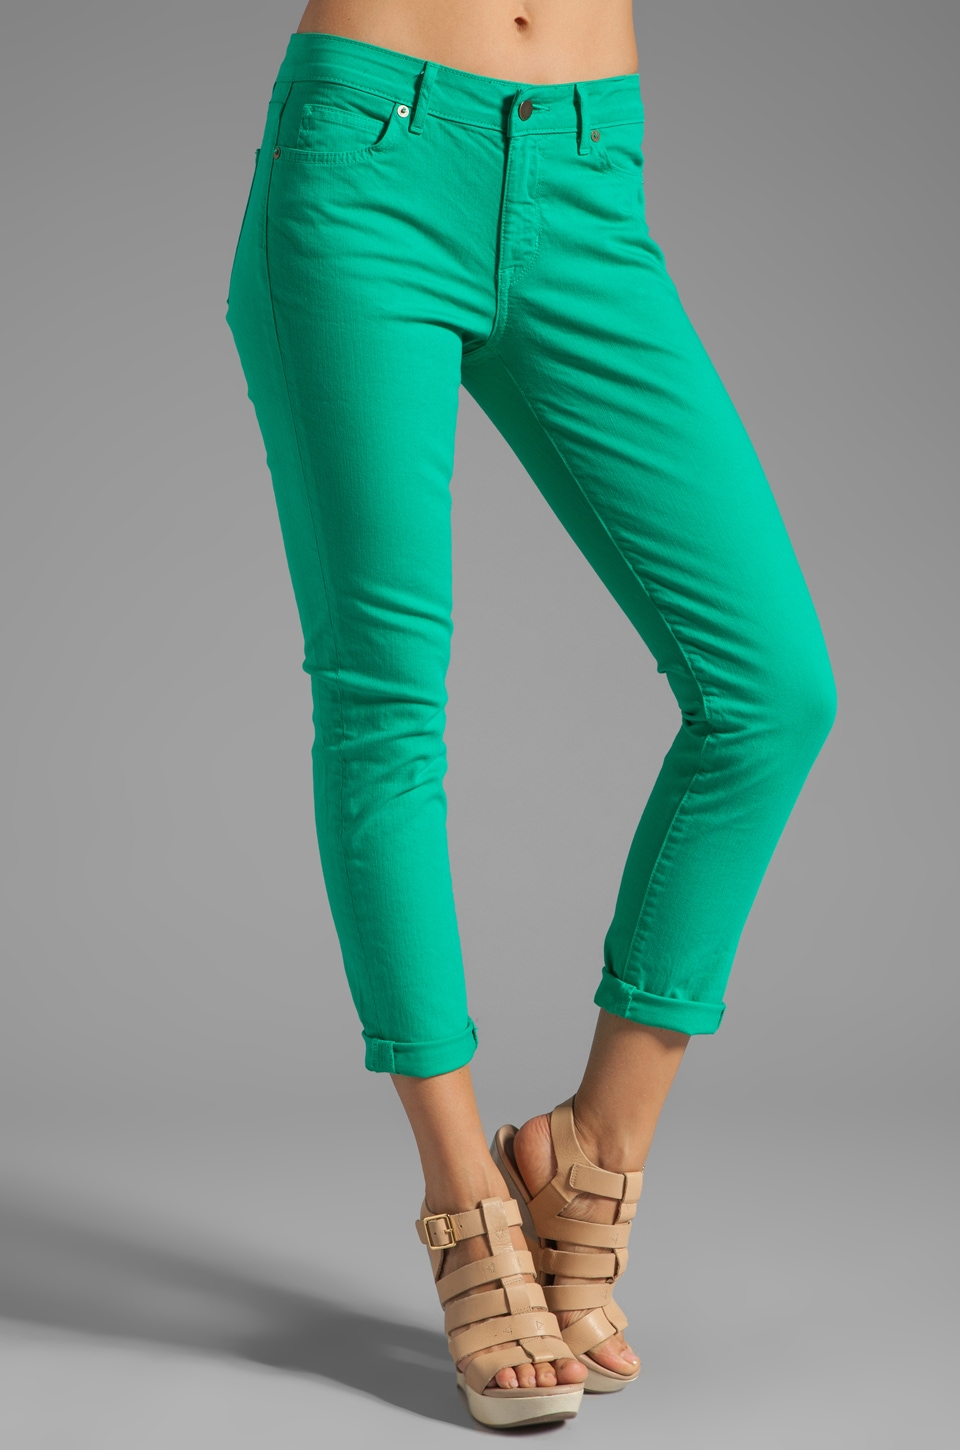 Rich & Skinny Relaxed Ankle Crop in Elf